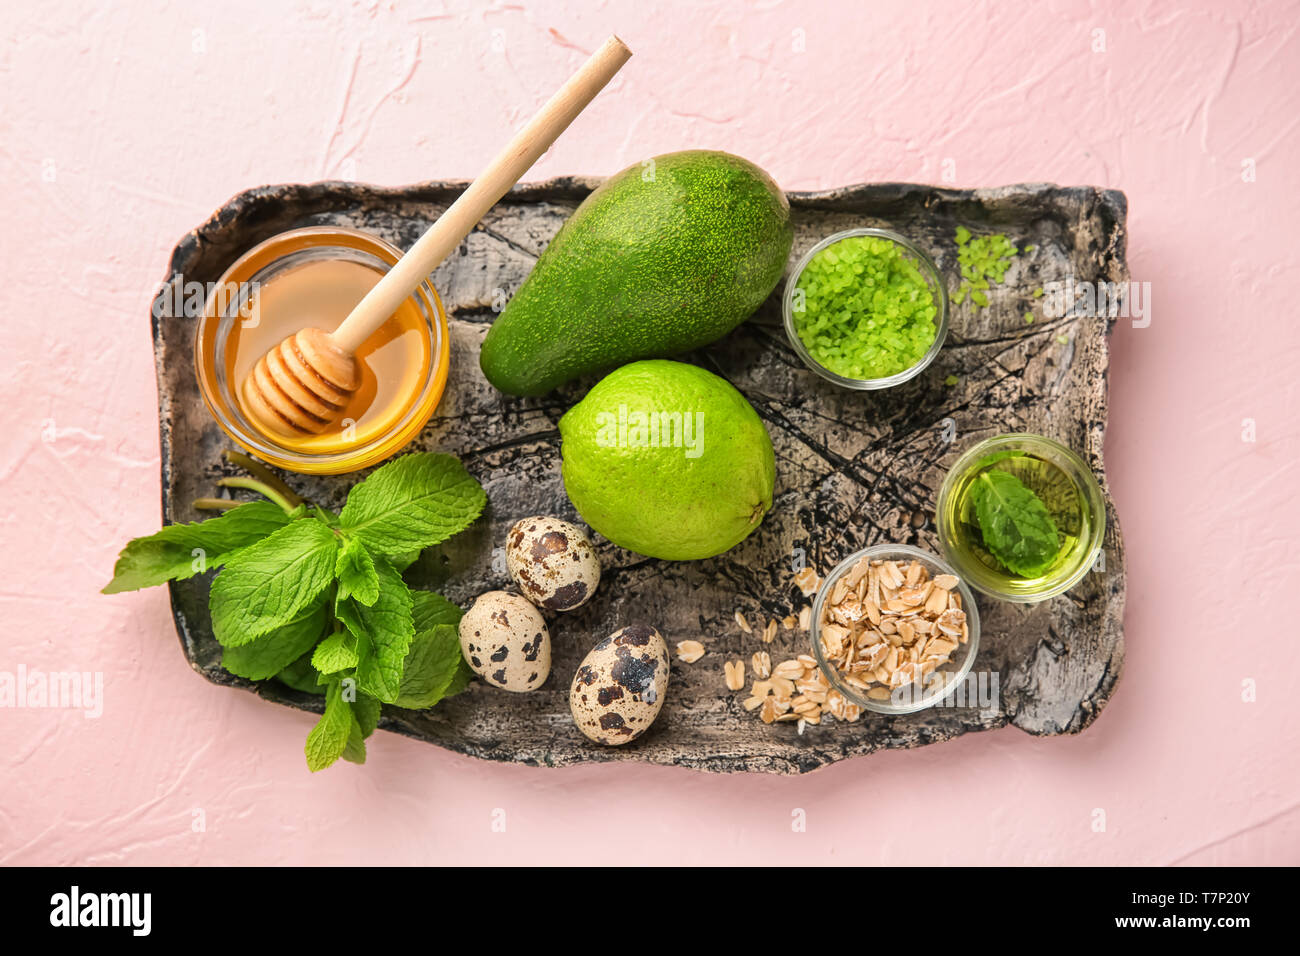 Plate with avocado and ingredients for natural homemade cosmetics on